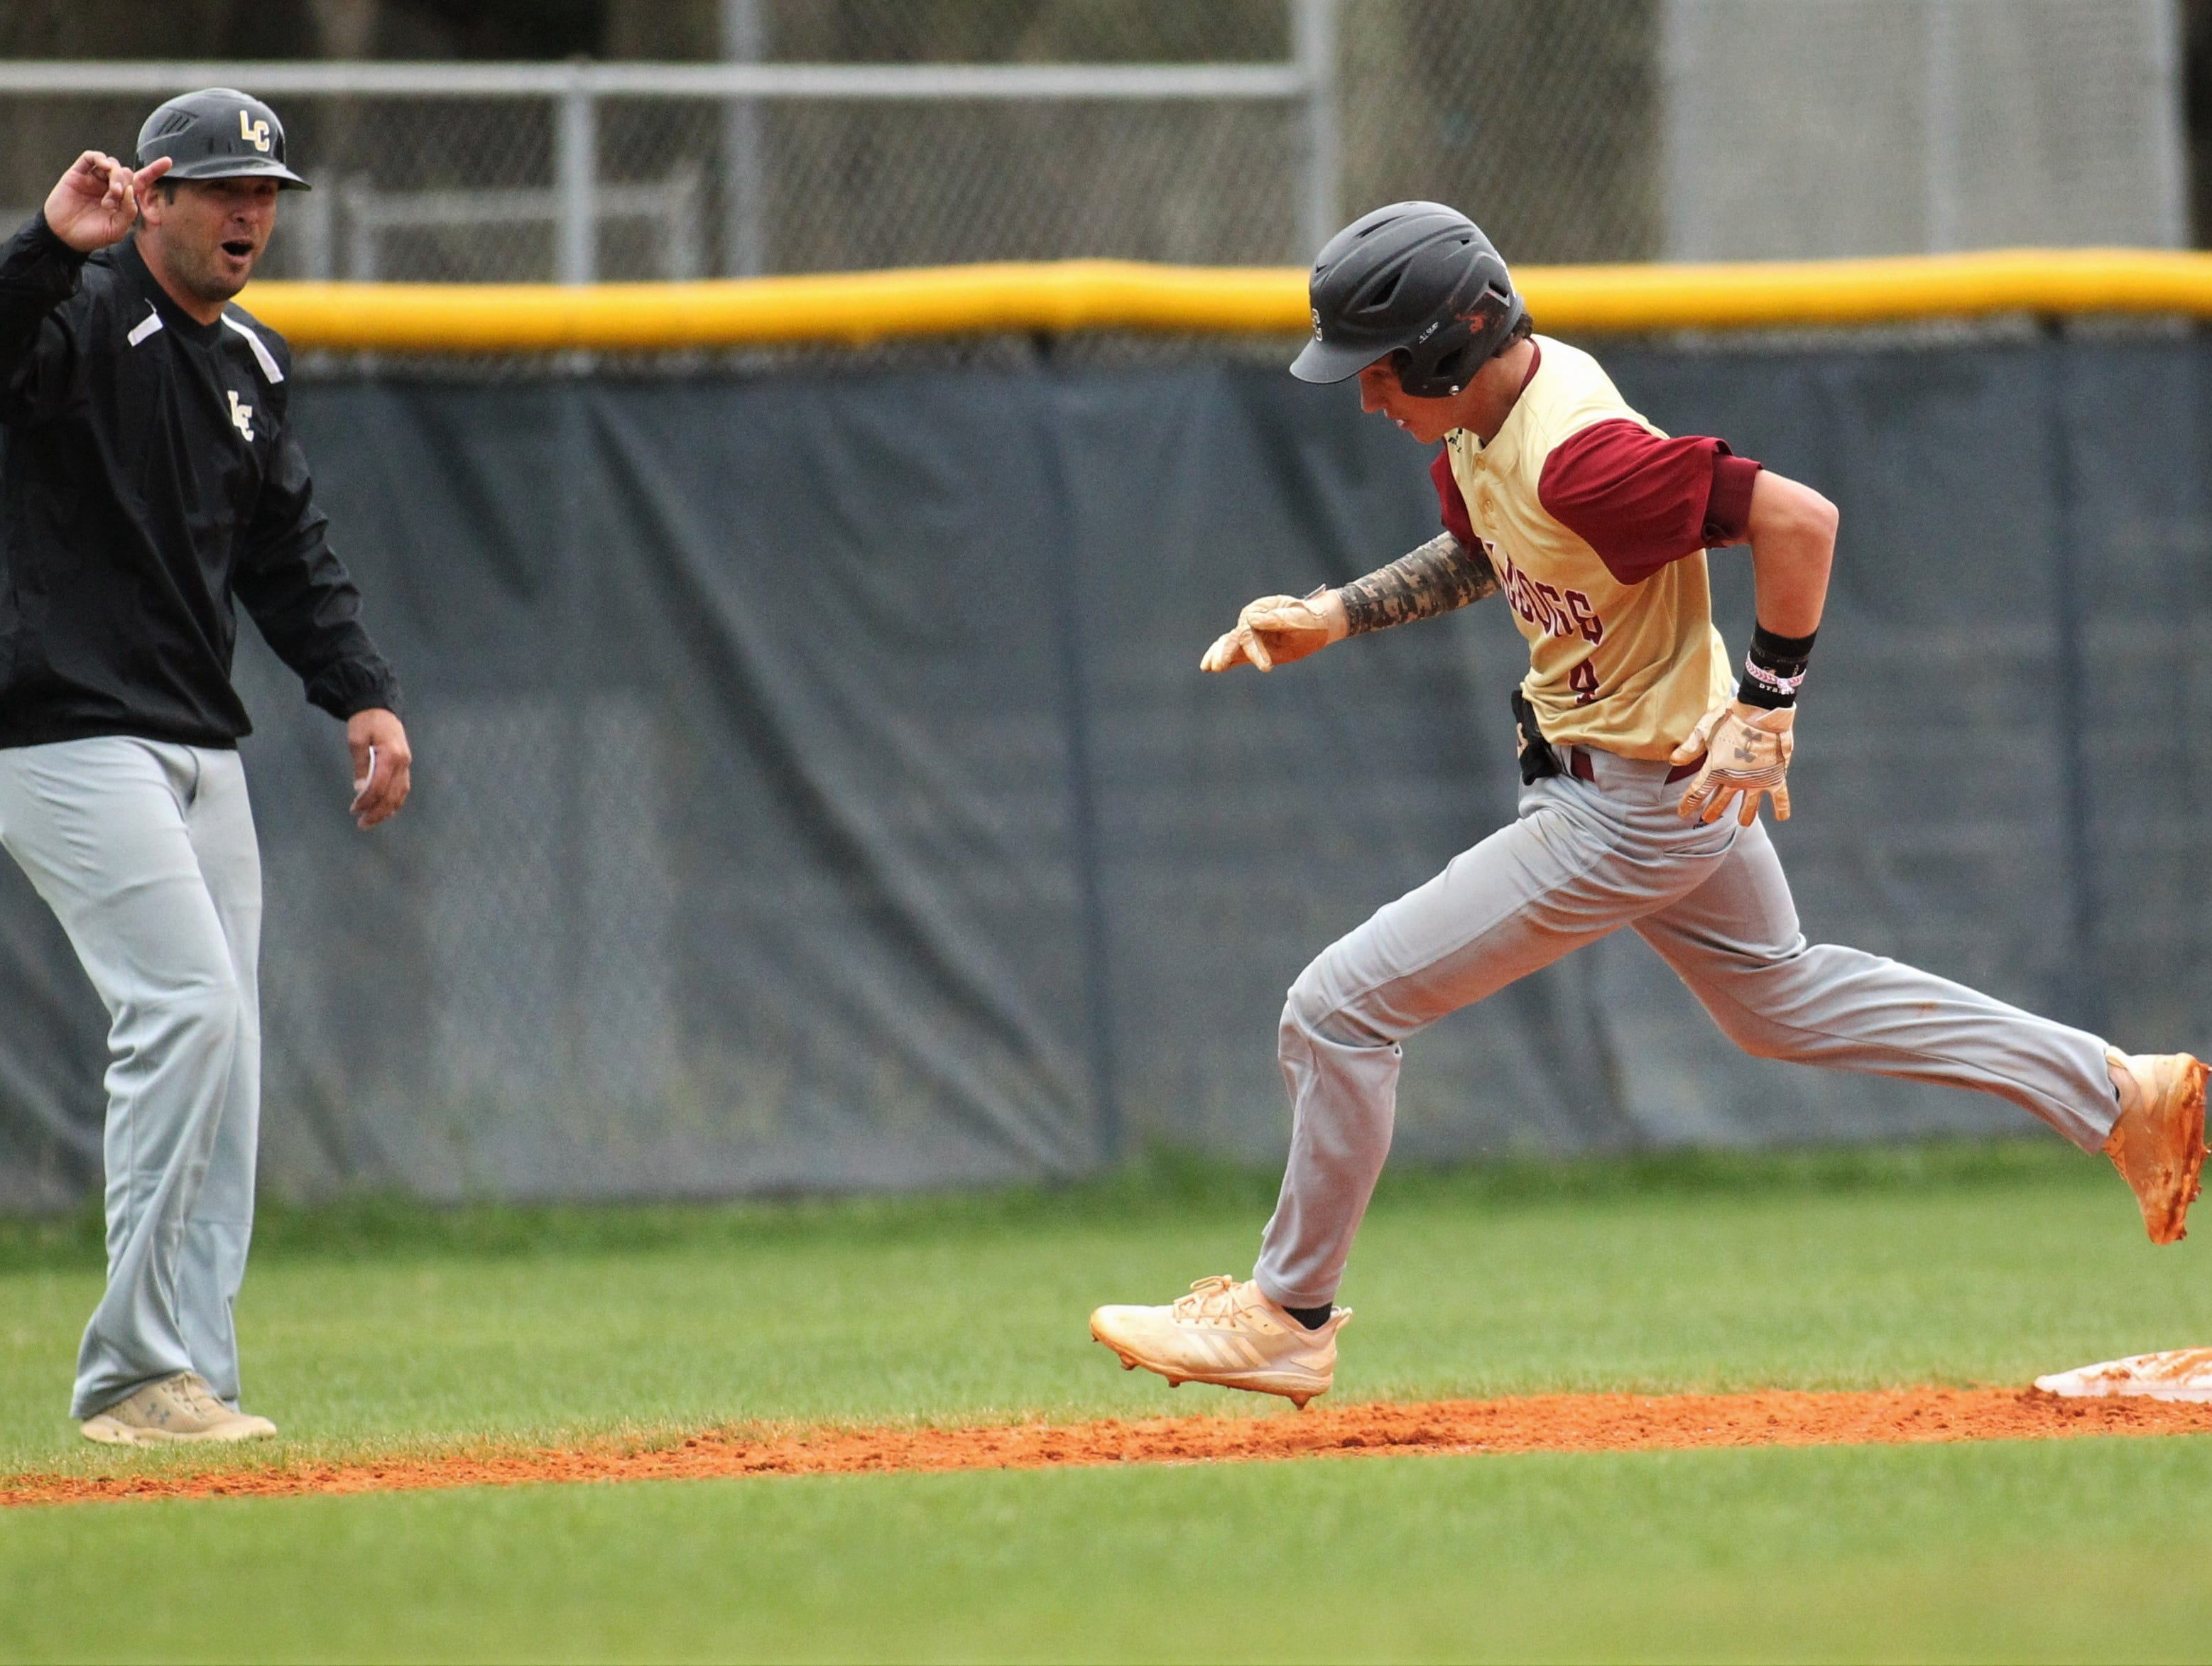 Liberty County's Austin Waller races around third to score a run, as directed by coach Mannie Stafford, as Liberty County's baseball team went on the road to beat Maclay 8-2 on Saturday, March 16, 2019. The Bulldogs played their first game following their head coach Corey Crum's tragic death six days ago.